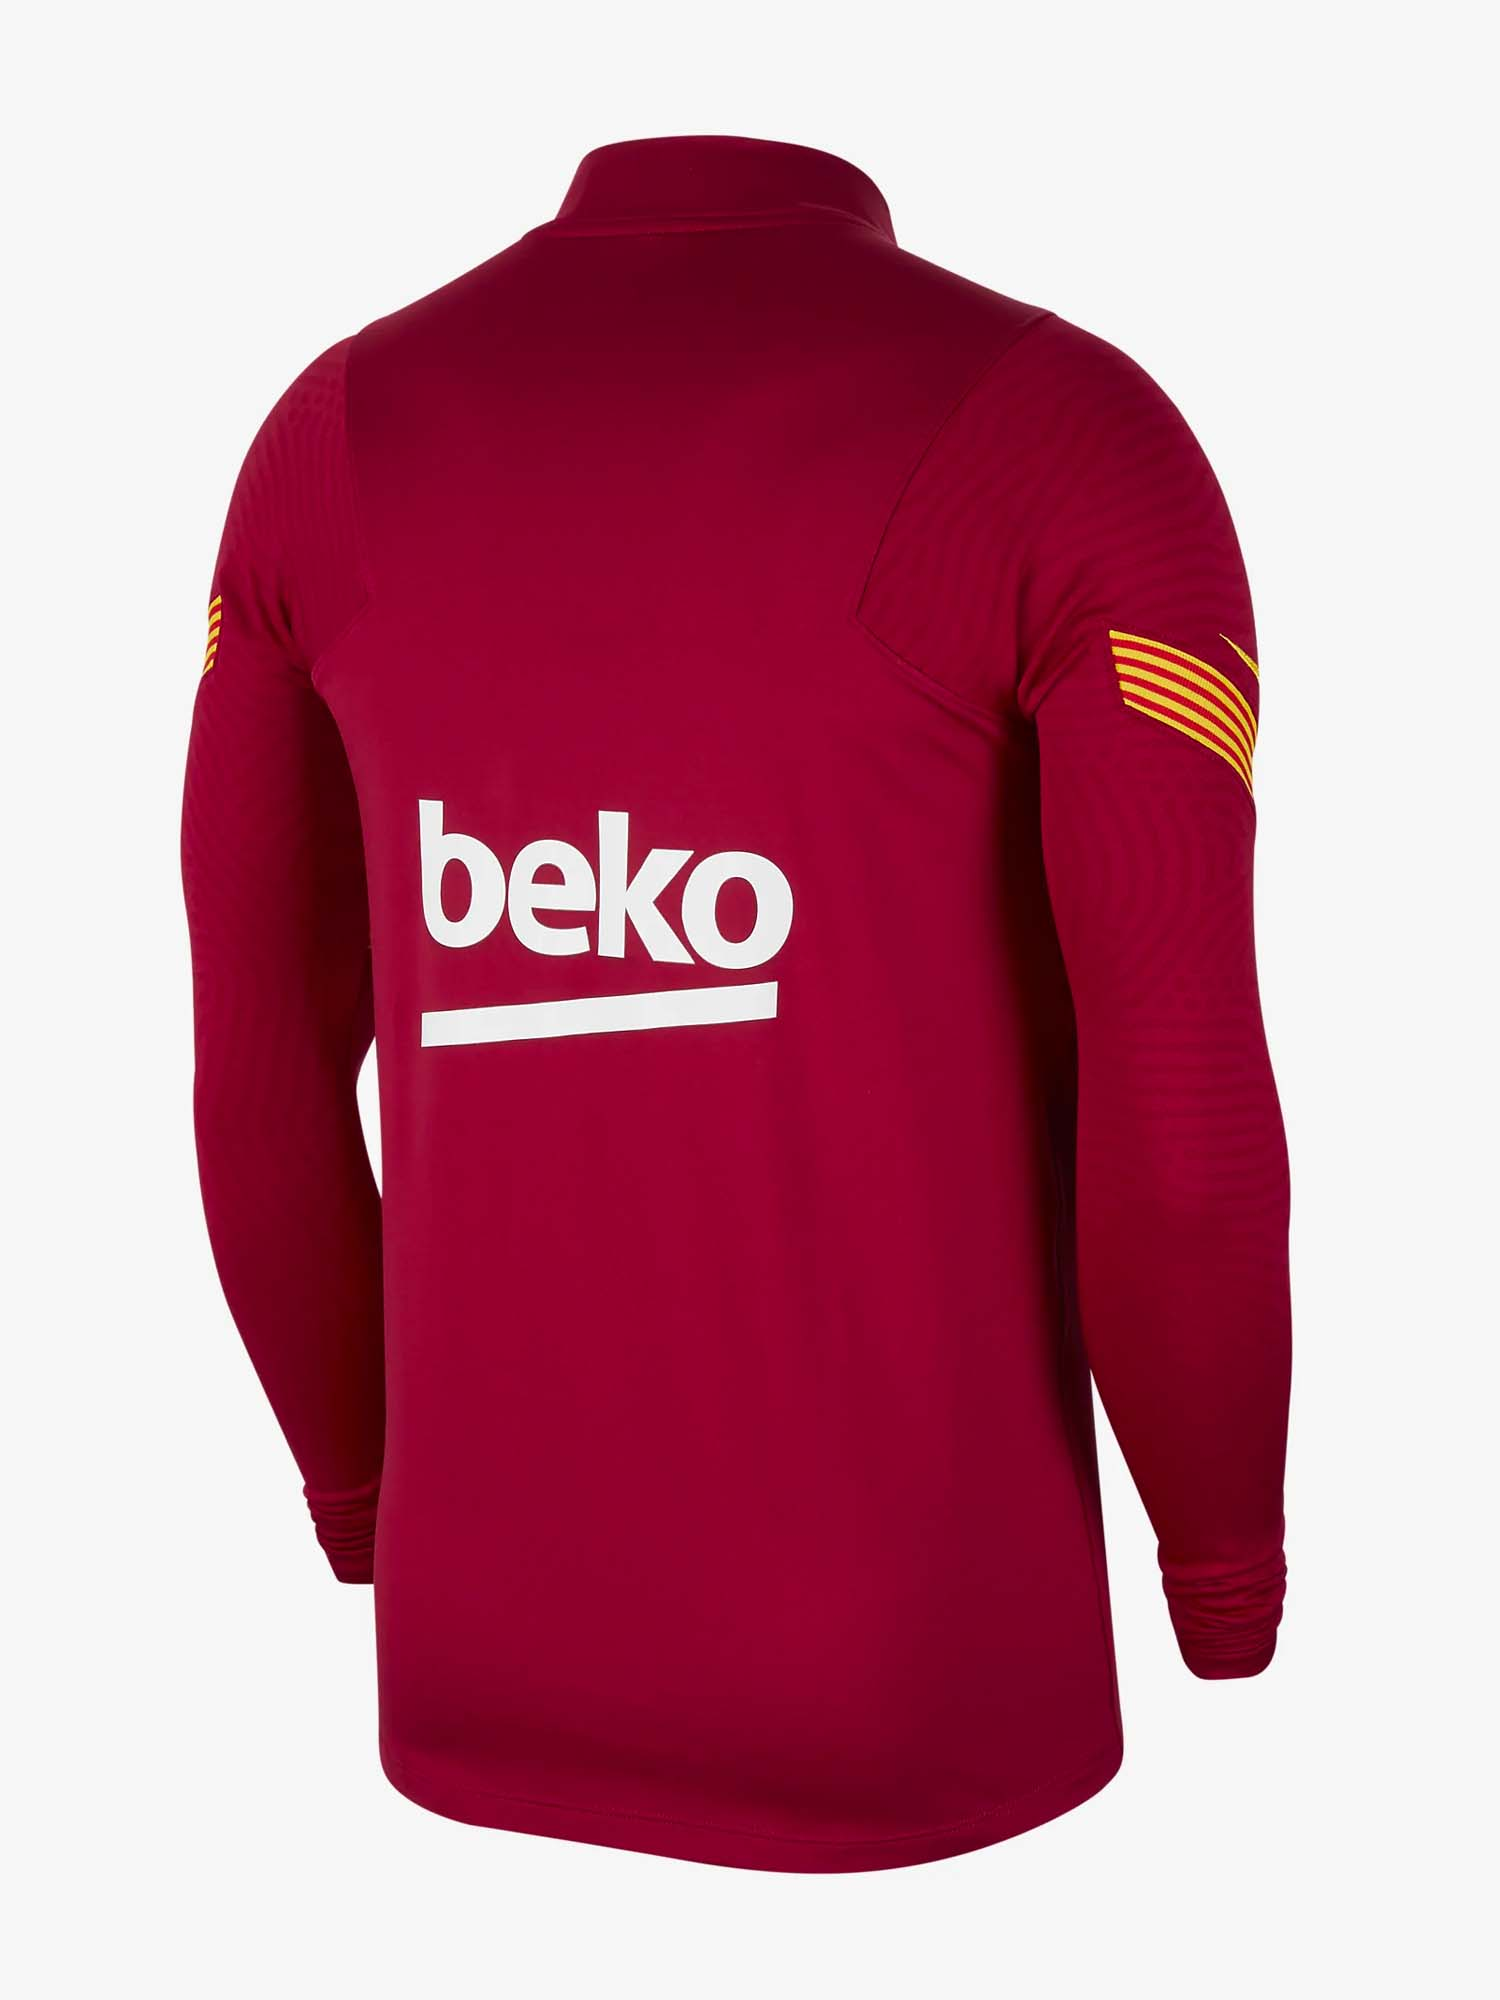 Download Fc Barcelona Training Kit 2020/21